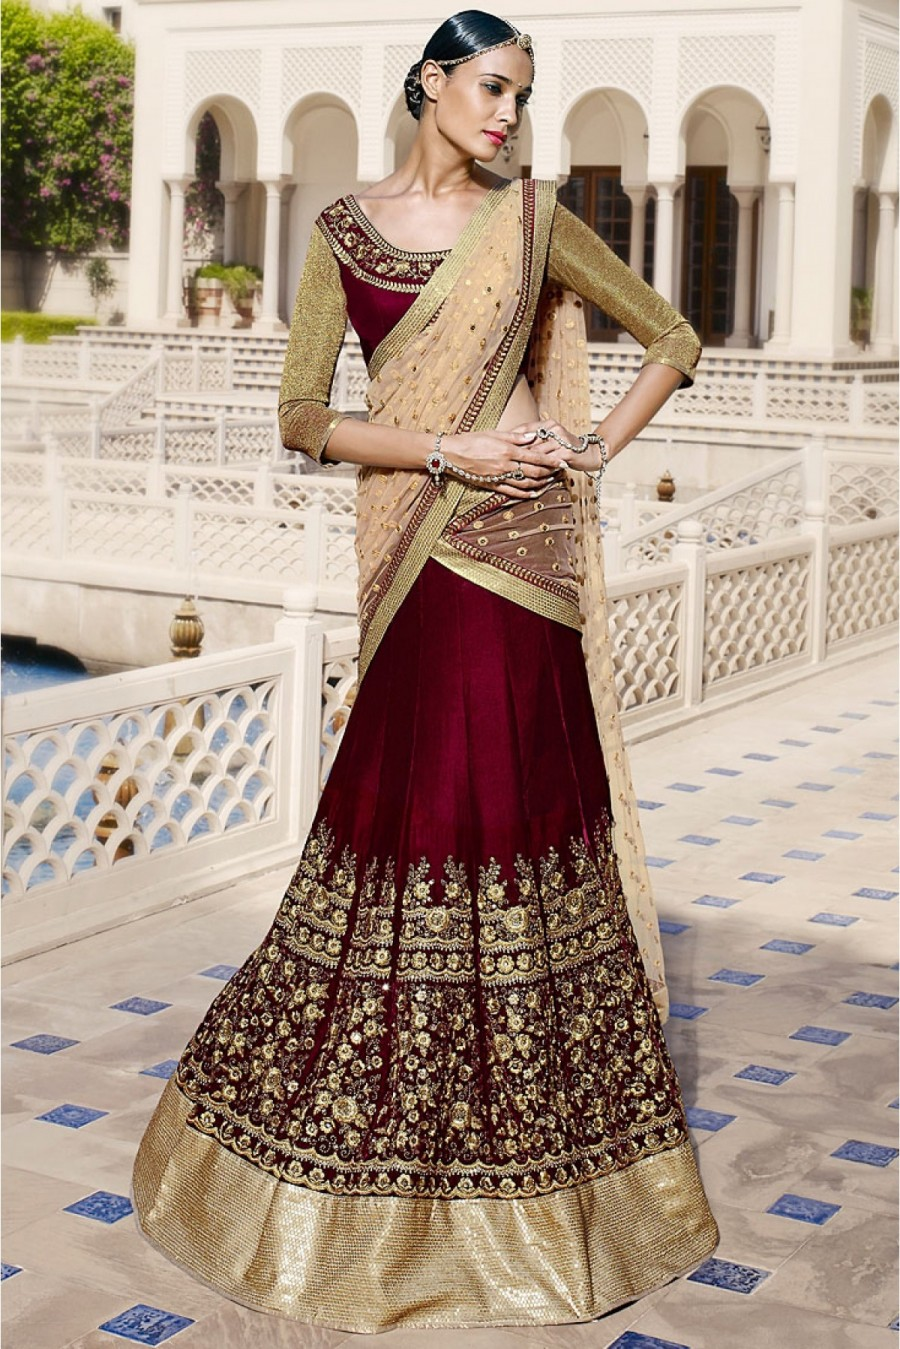 2660a3345 Buy Velvet and Net Party Wear Lehenga Choli in Beige and Maroon Colour  NC2384 Online